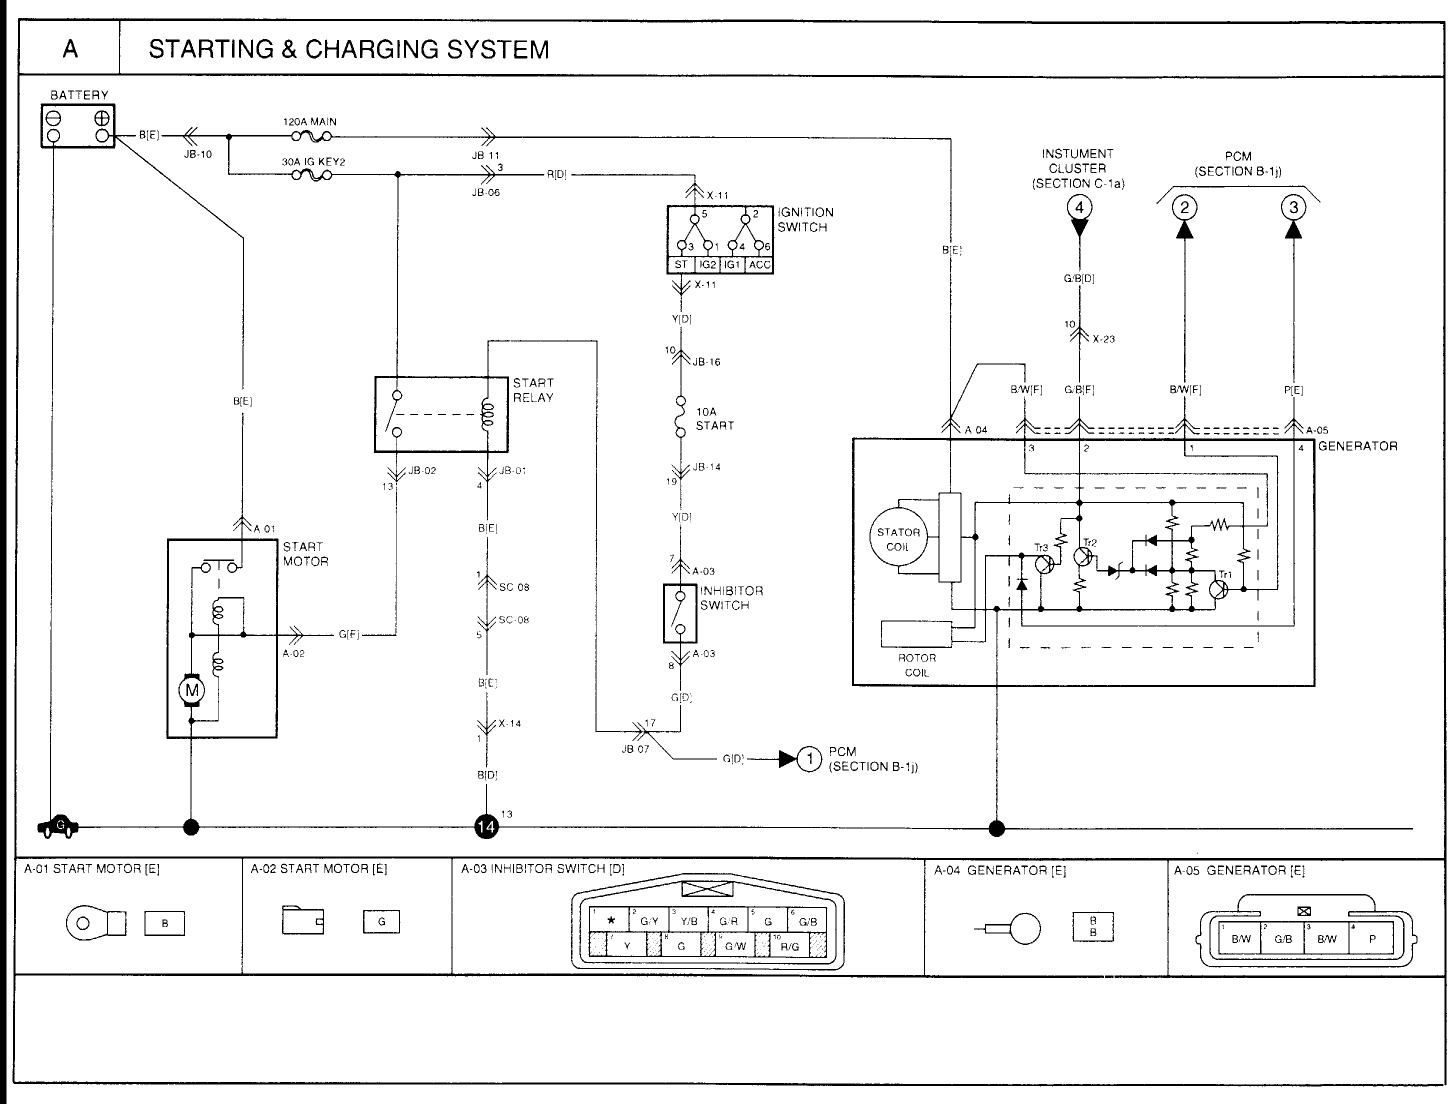 Engine For 2005 Kia Sorento Fuse Box Diy Enthusiasts Wiring Diagrams Won T Crank No Clicking Page 2 Forum Rh Forums Com 2014 Panel 2009